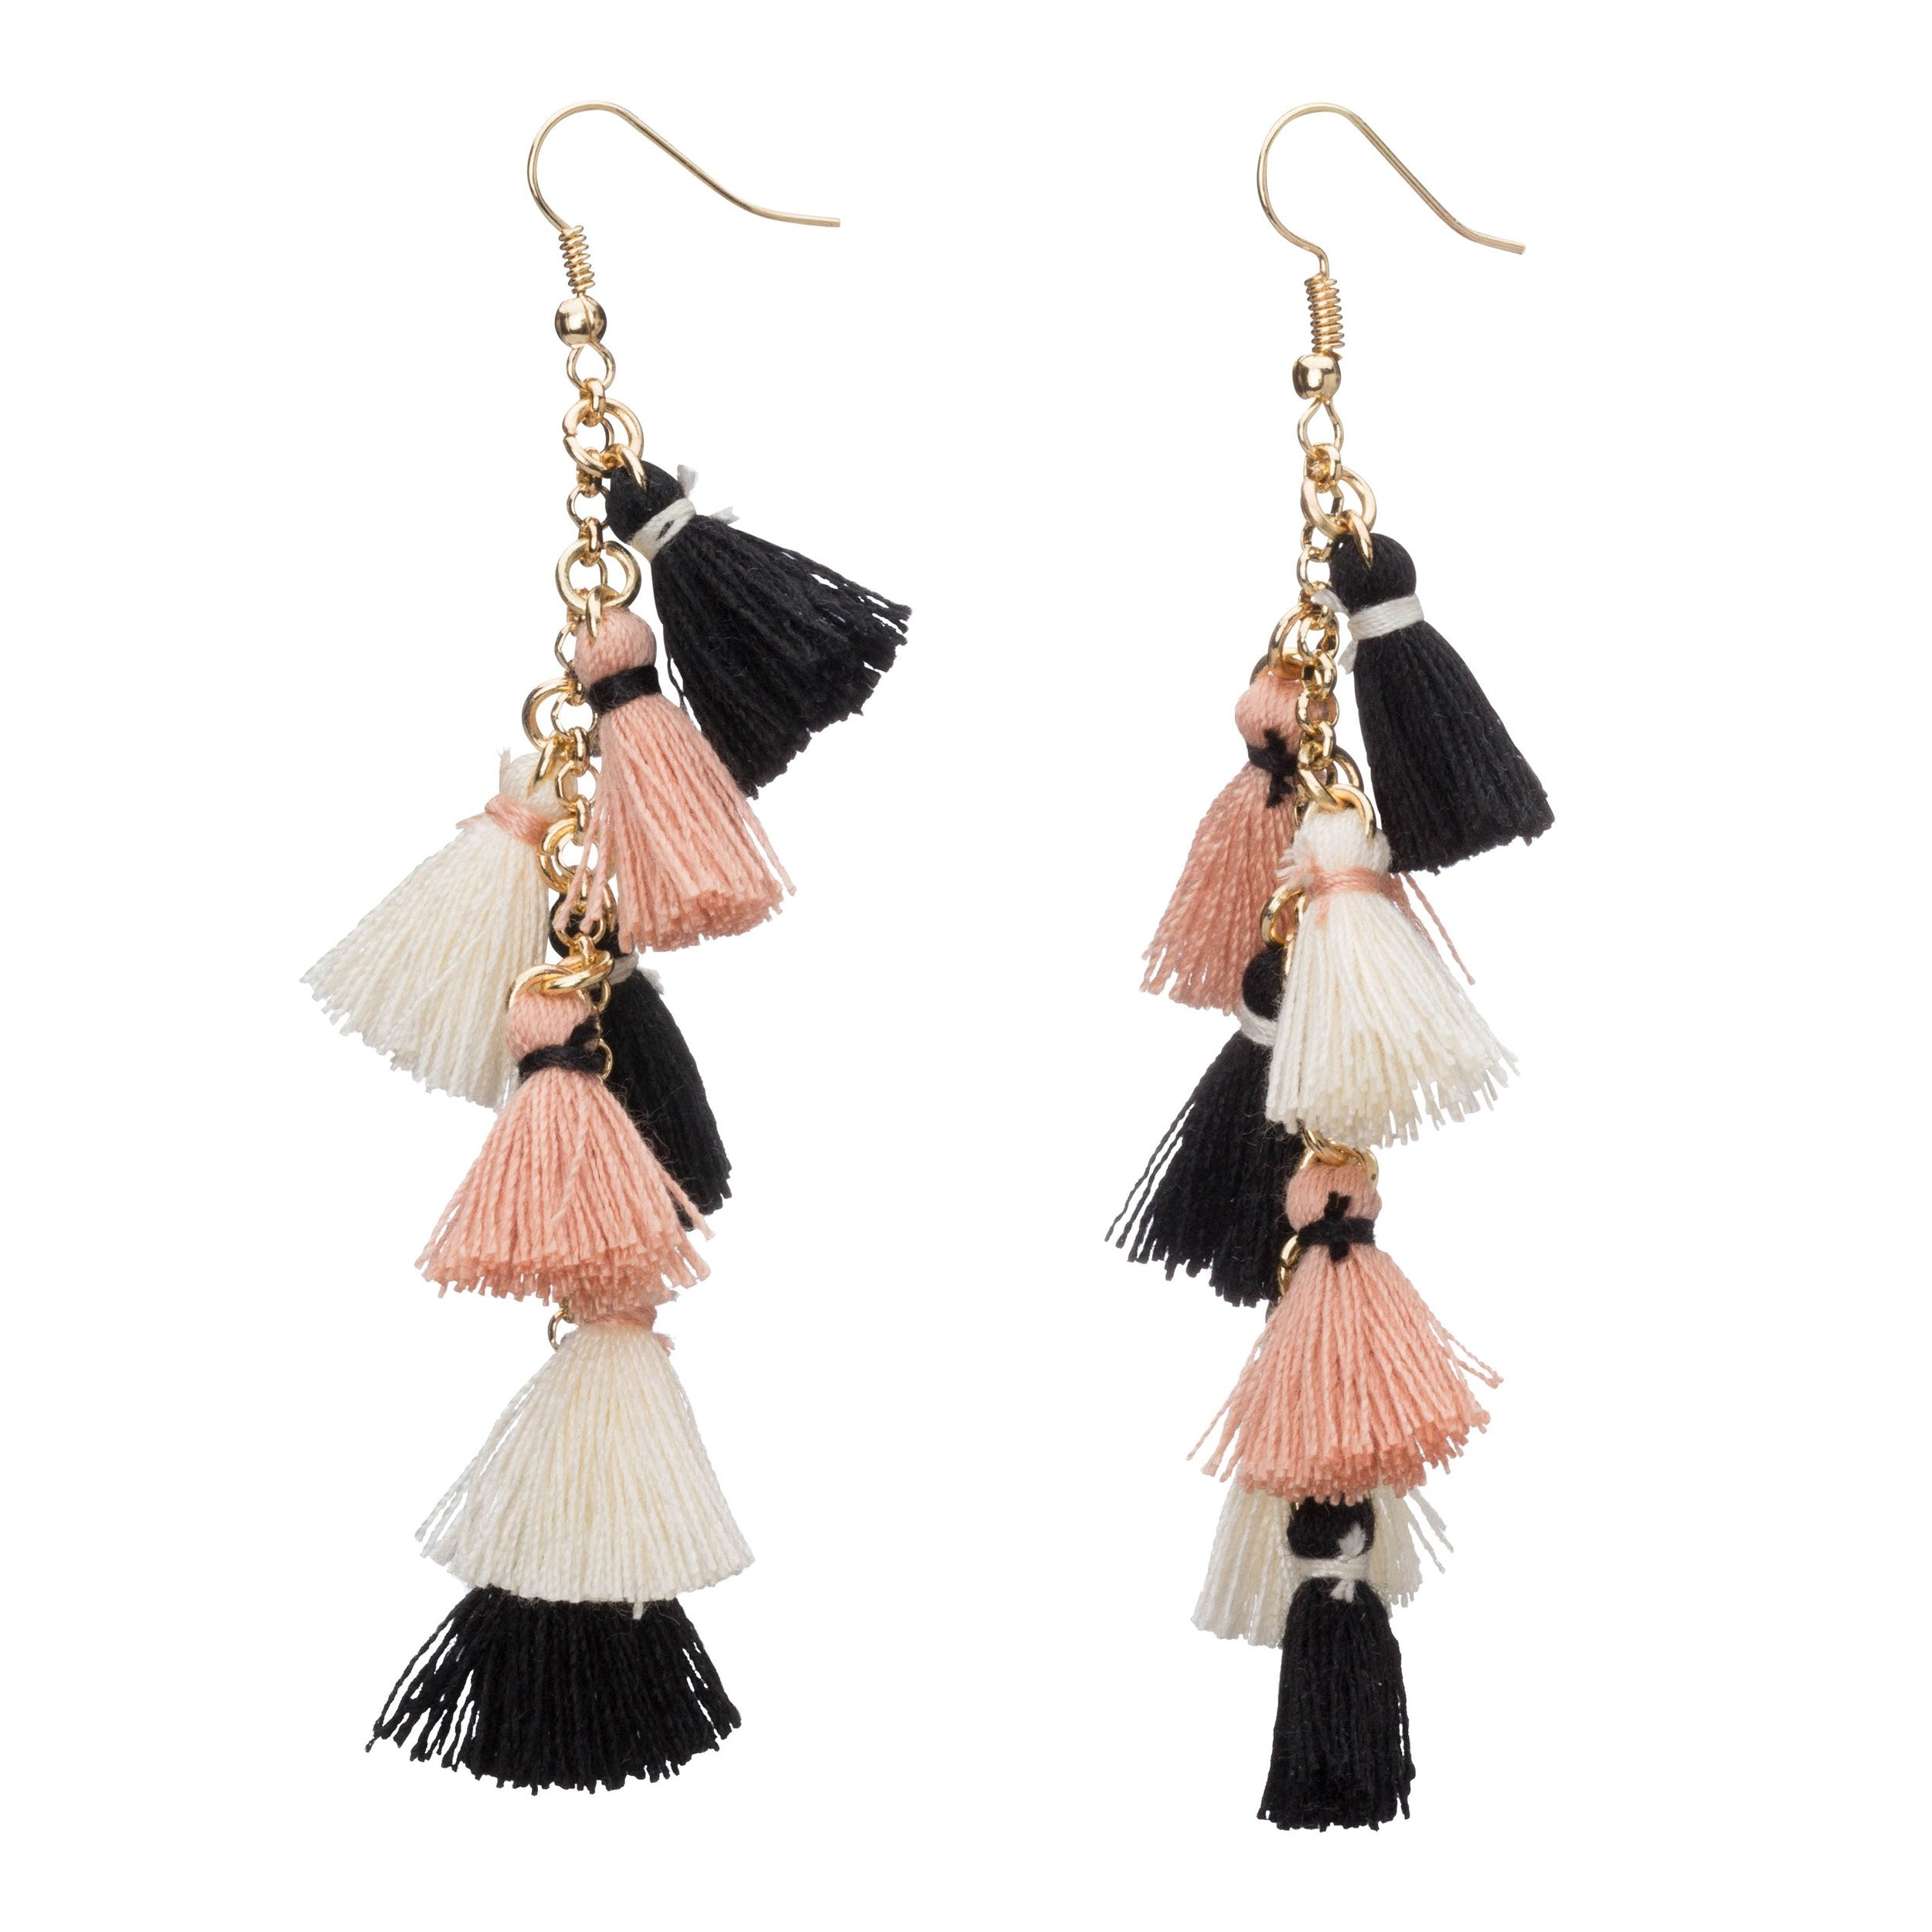 lee black earring tassel tassle simple earrings holst shop